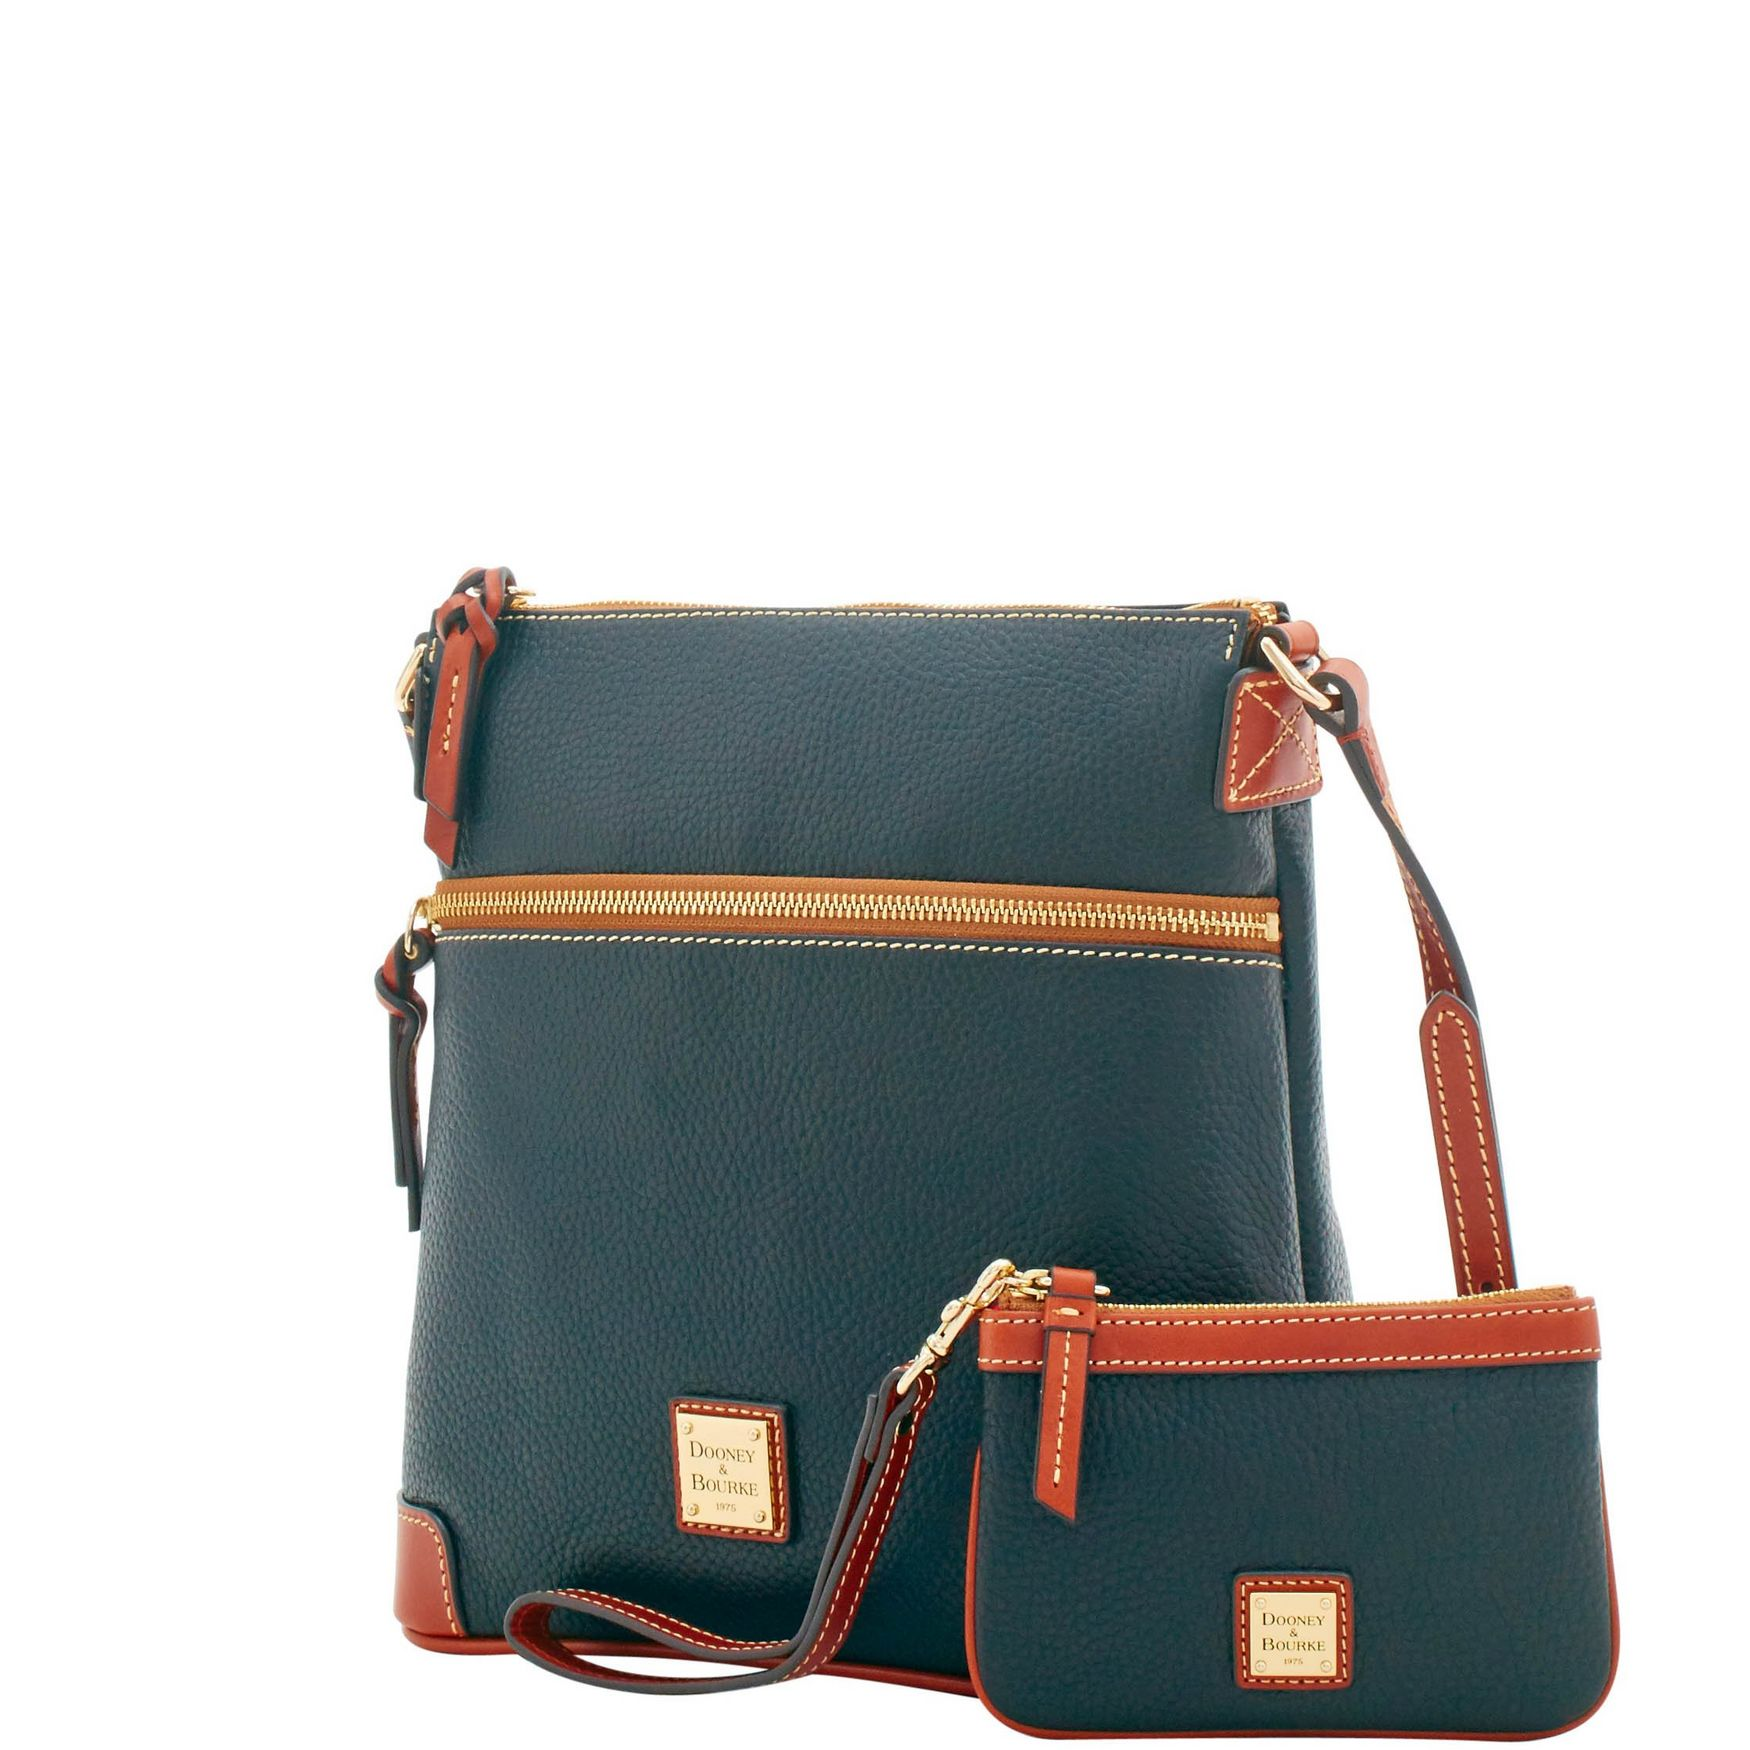 Dooney-amp-Bourke-Pebble-Grain-Crossbody-Medium-Wristlet-Shoulder-Bag thumbnail 8